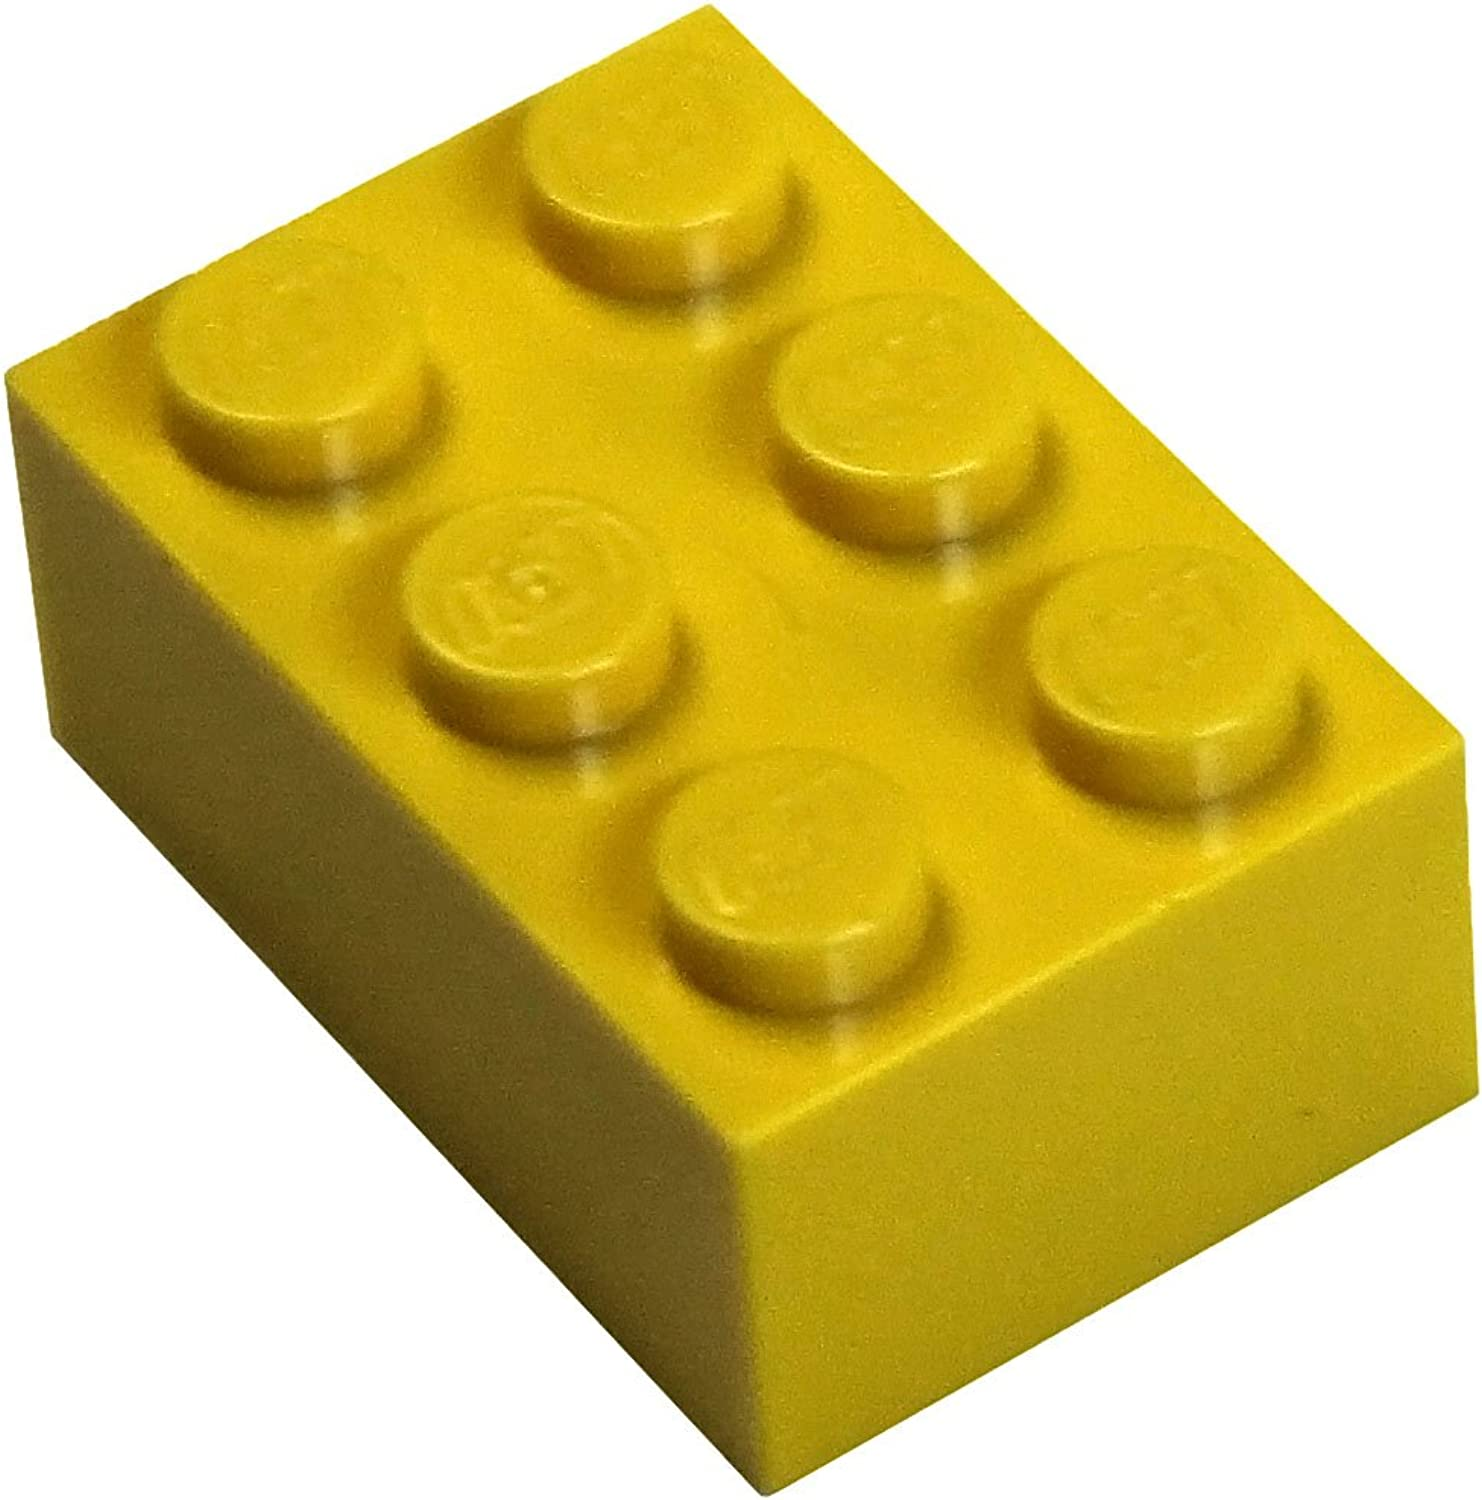 LEGO Parts and Pieces  Yellow (Bright Yellow) 2x3 Brick x200